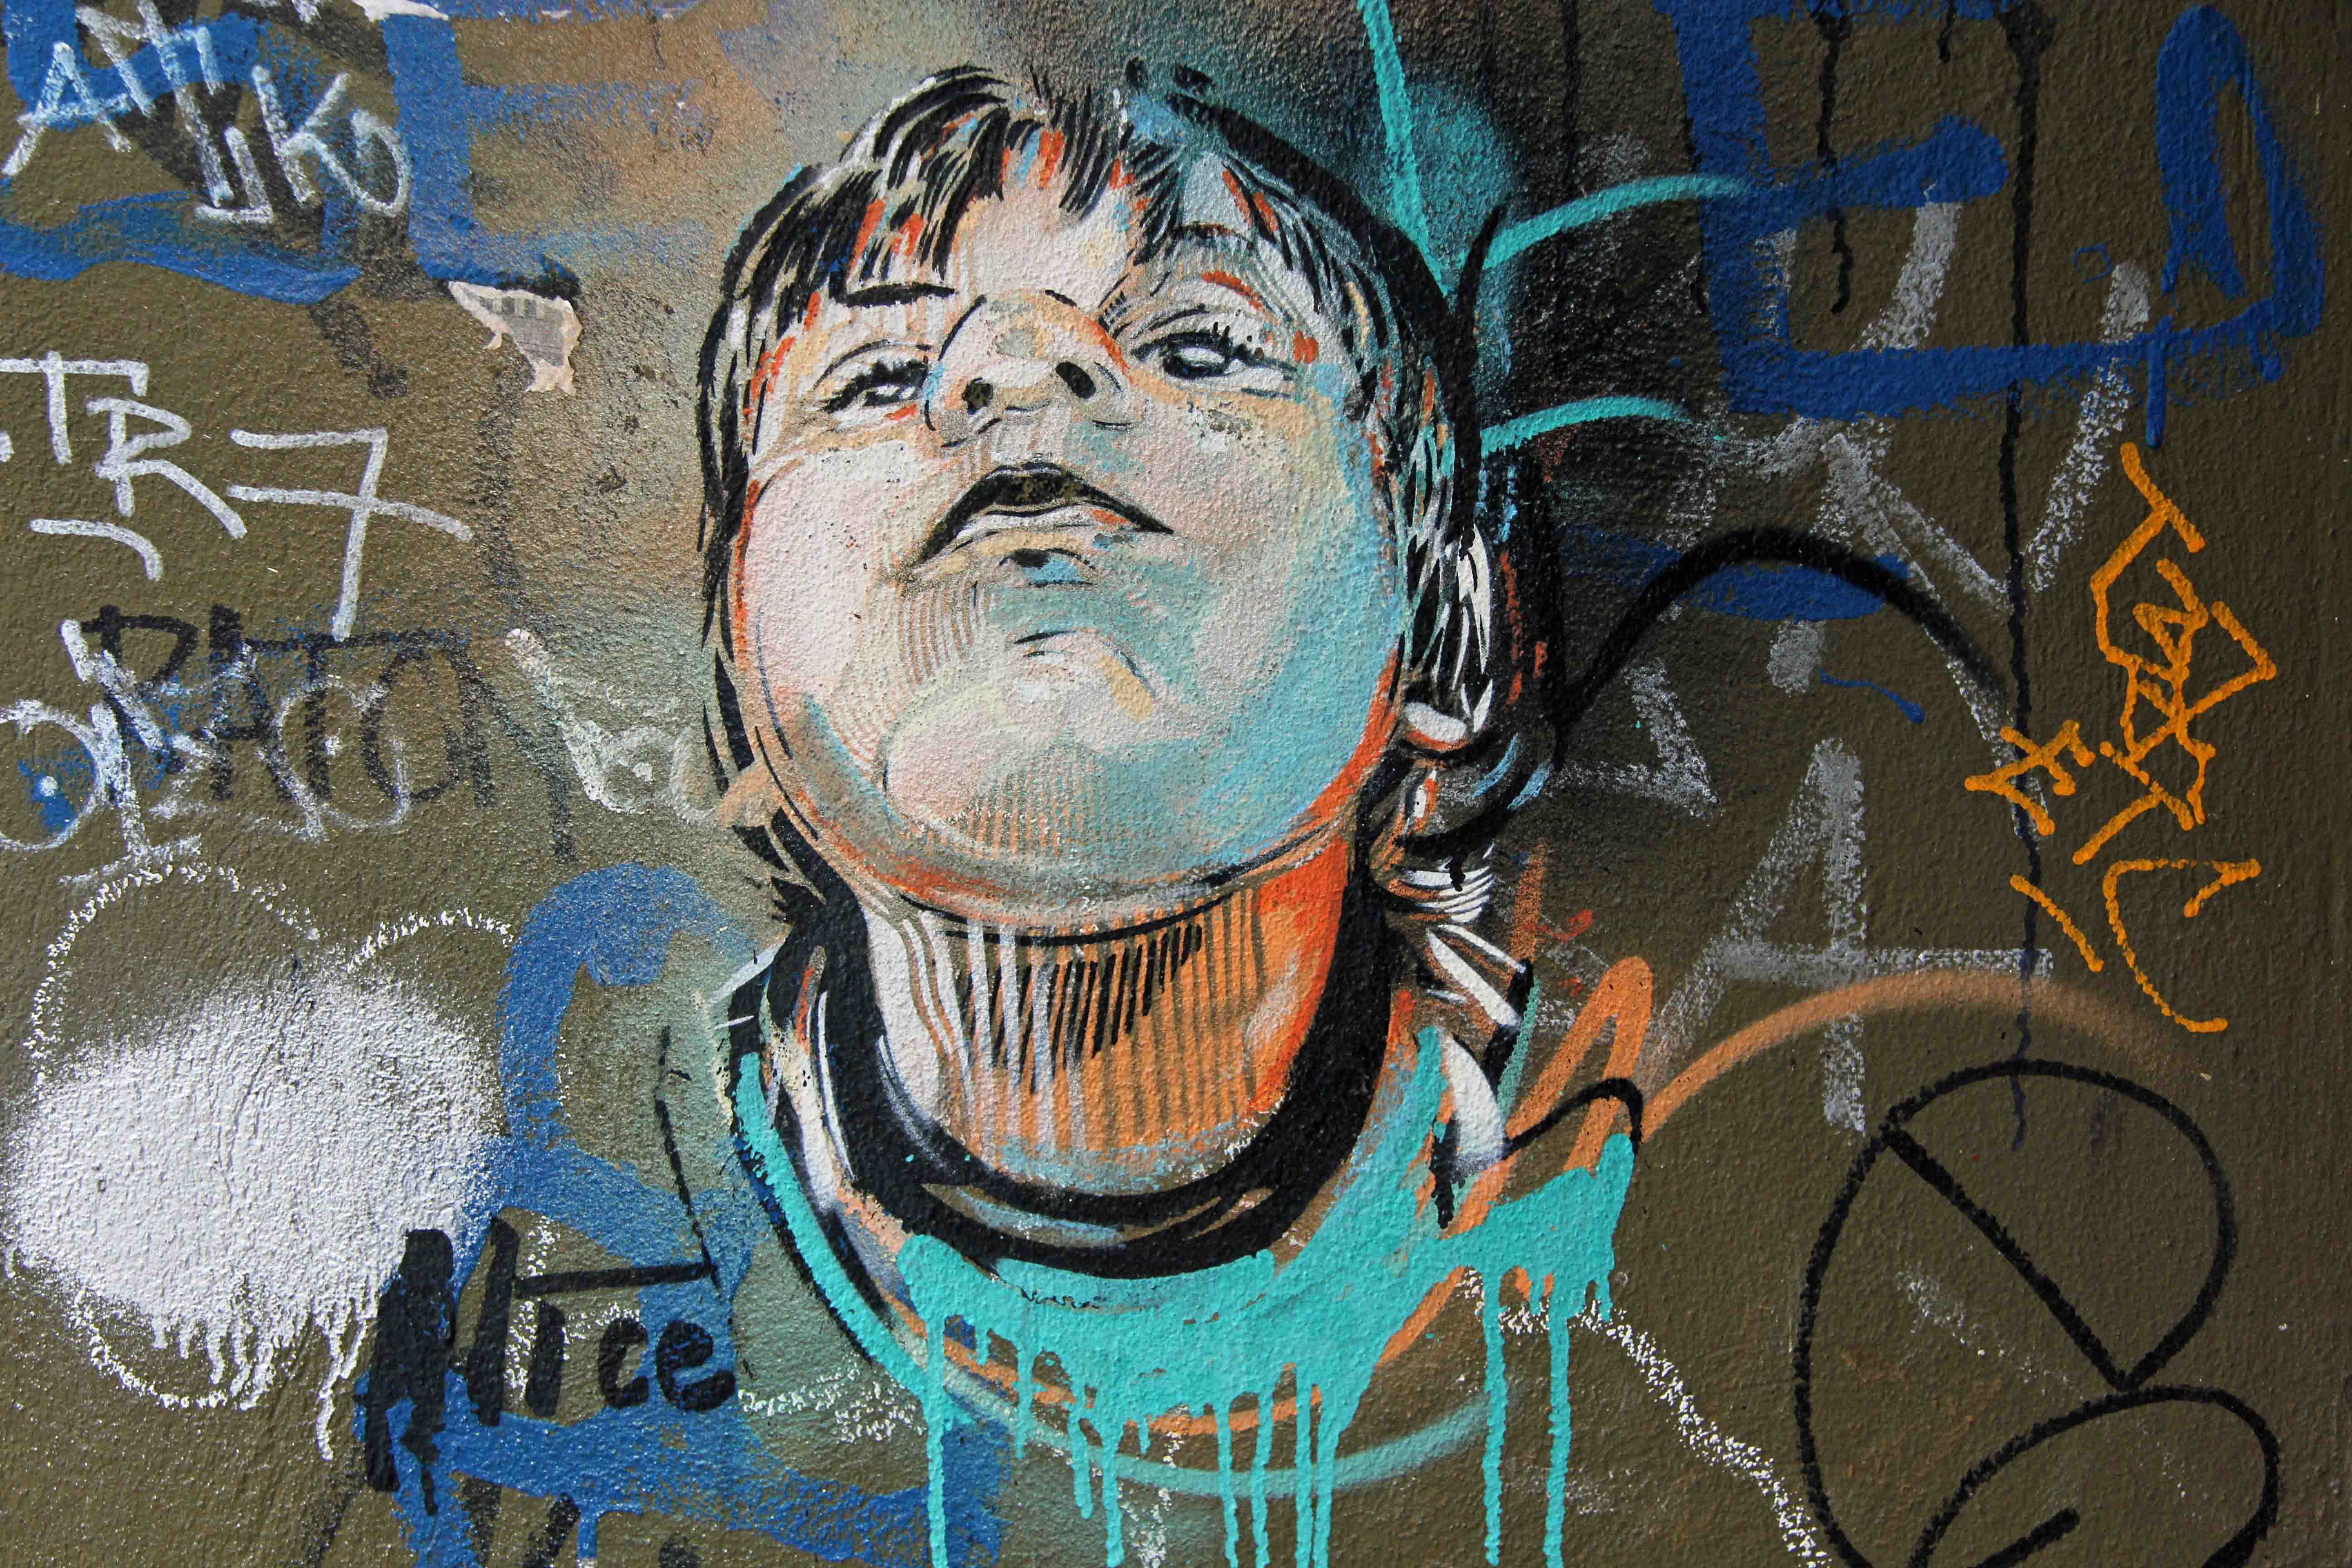 A Little Angel - Street Art by AliCé in Berlin